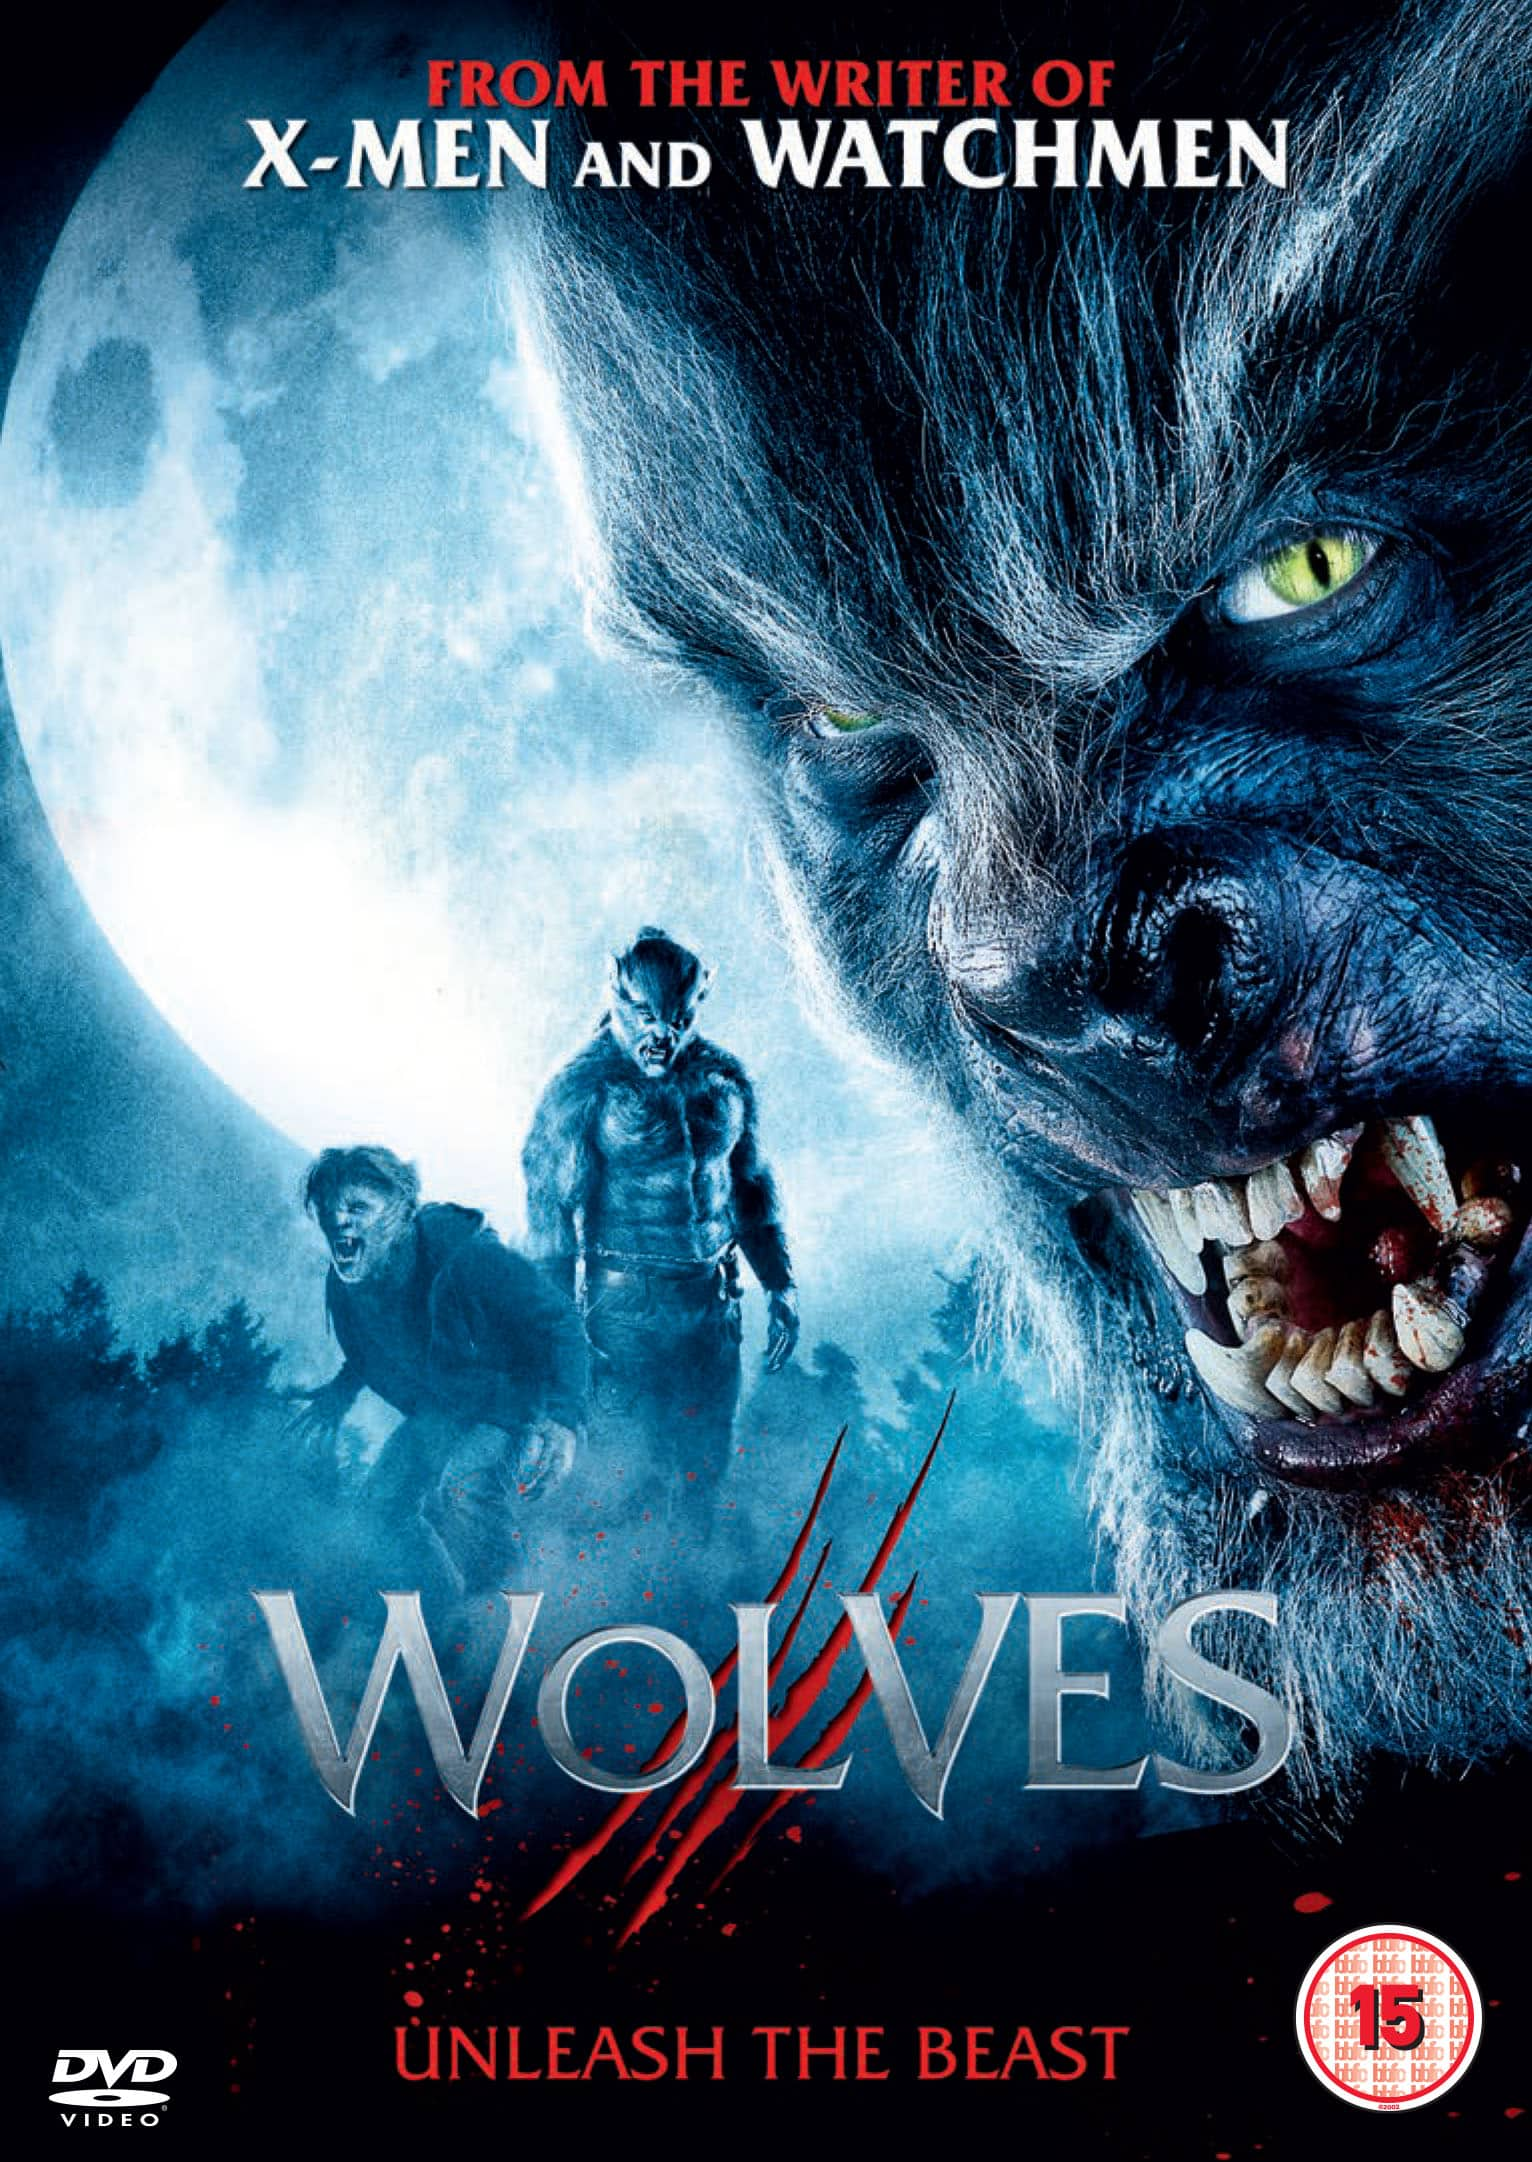 WOLVES Competition Image - UK Readers: Win a Copy of Wolves on DVD!